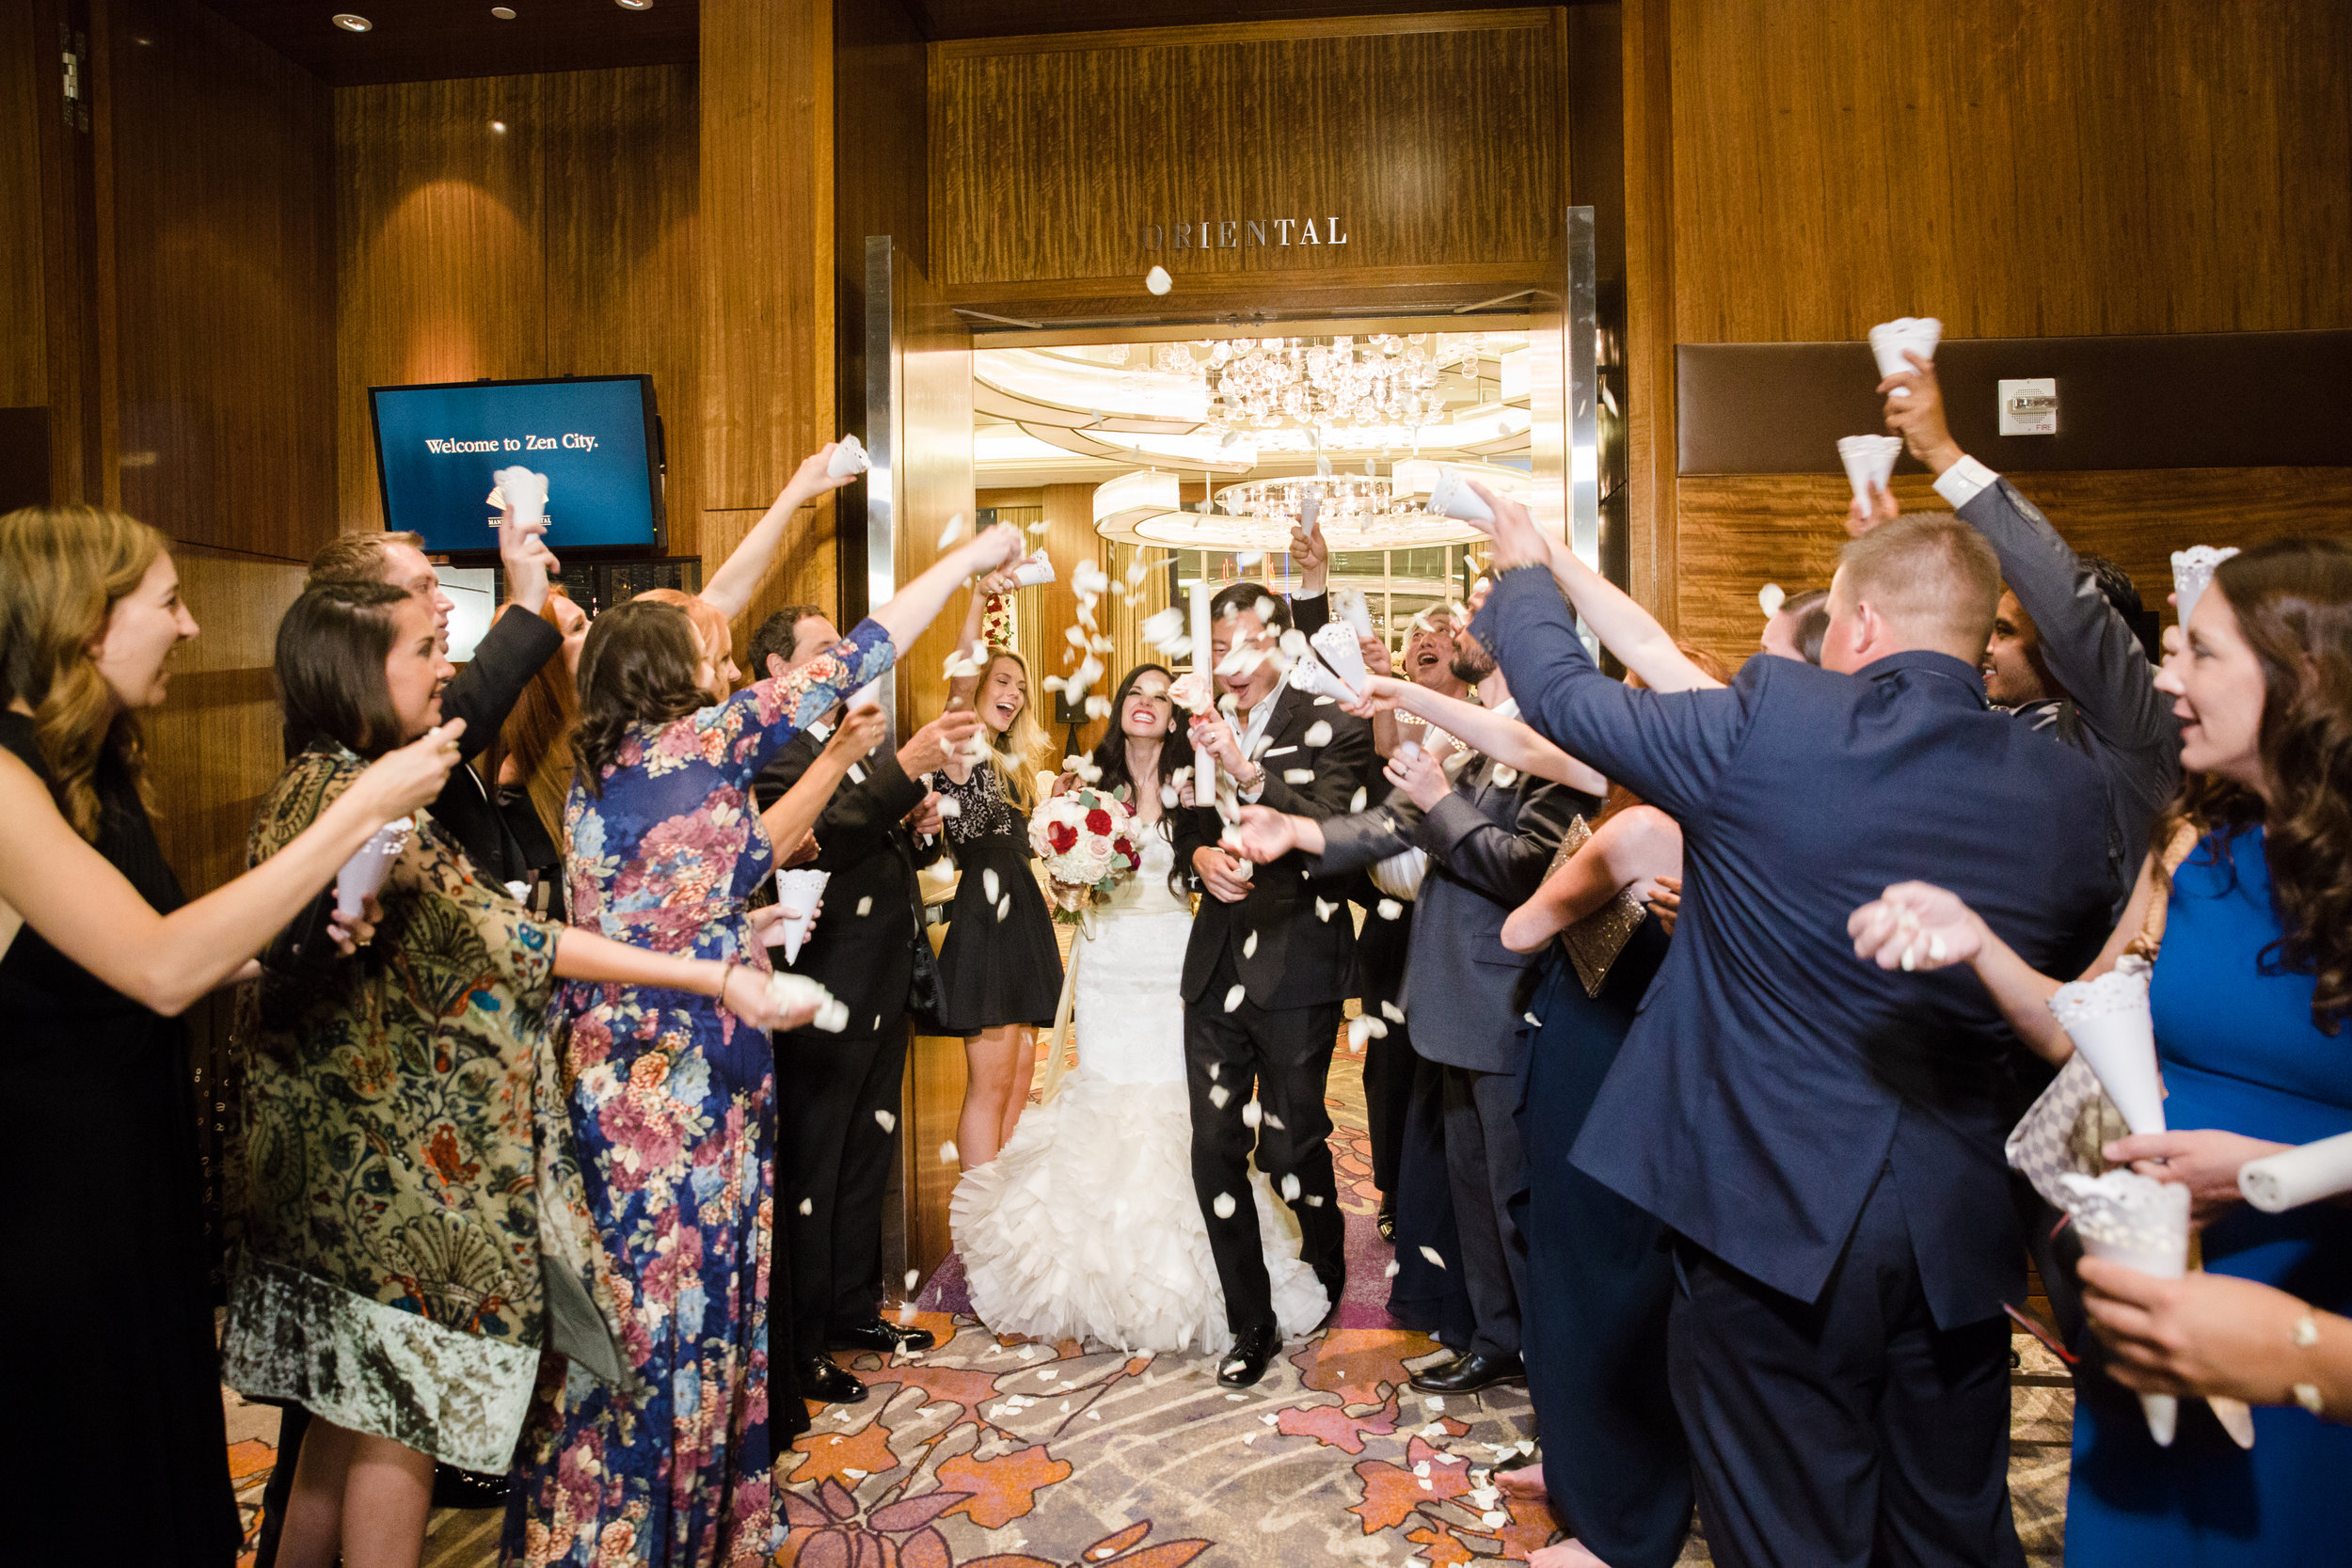 Guests throwing rose petals during bride and groom's exit.Luxury wedding at the Mandarin Oriental with a color scheme of white, blush, and pops of wine red produced by Las Vegas Wedding Planner Andrea Eppolito with photos by Stephen Salazar Photography.